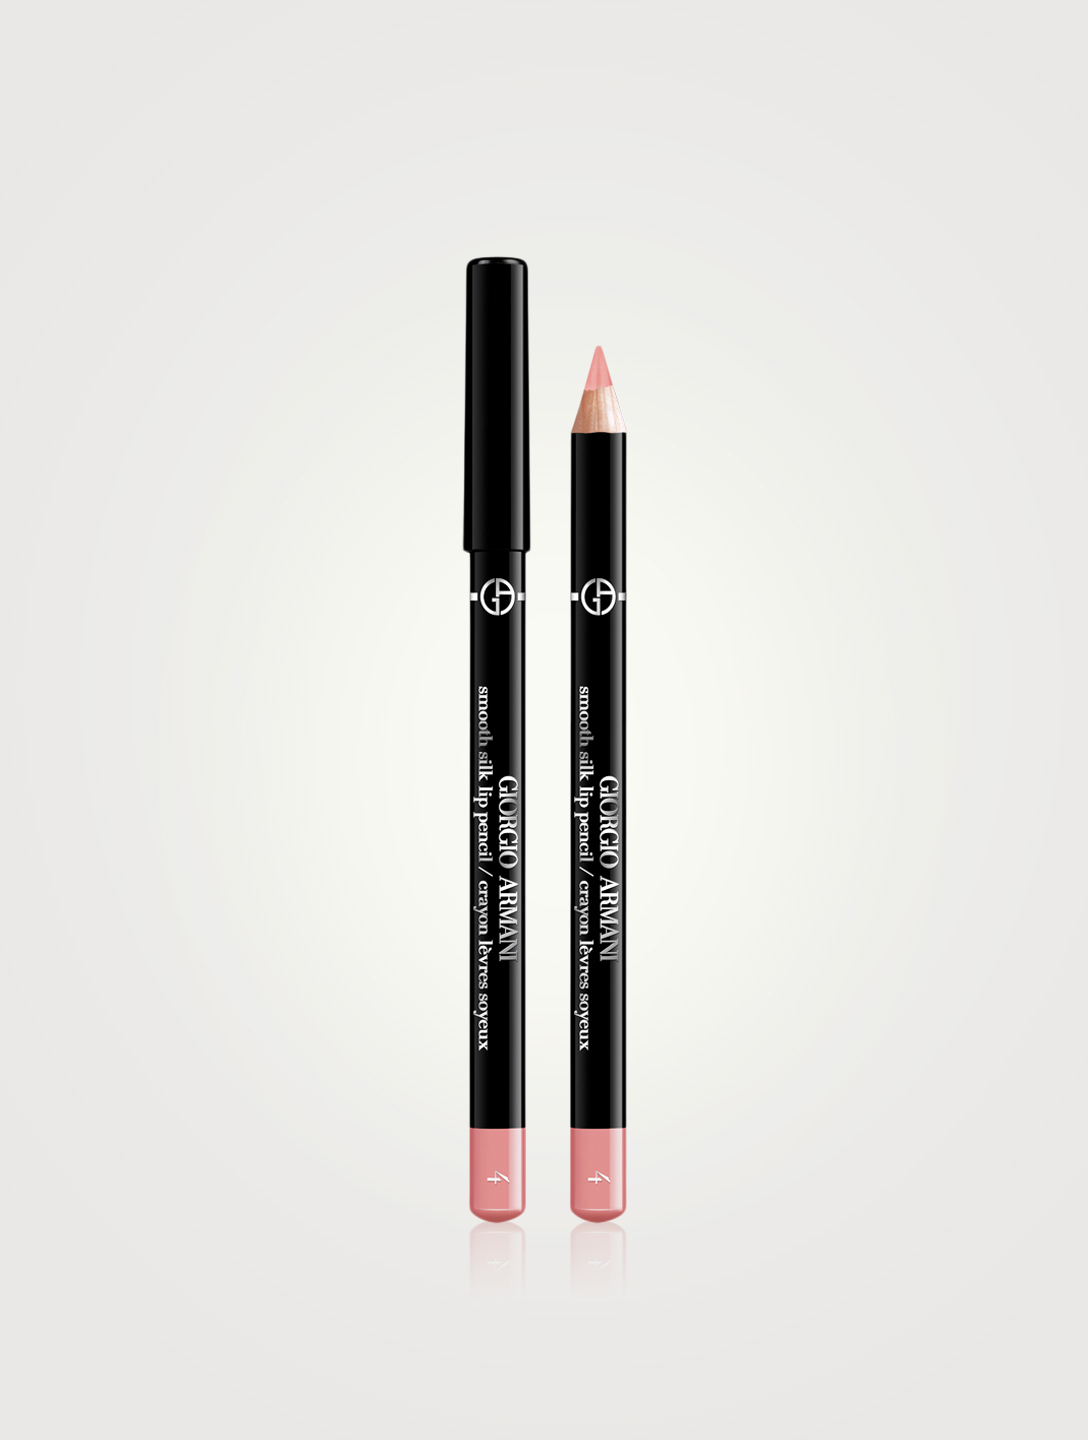 GIORGIO ARMANI Smooth Silk Lip Pencil Beauty Pink